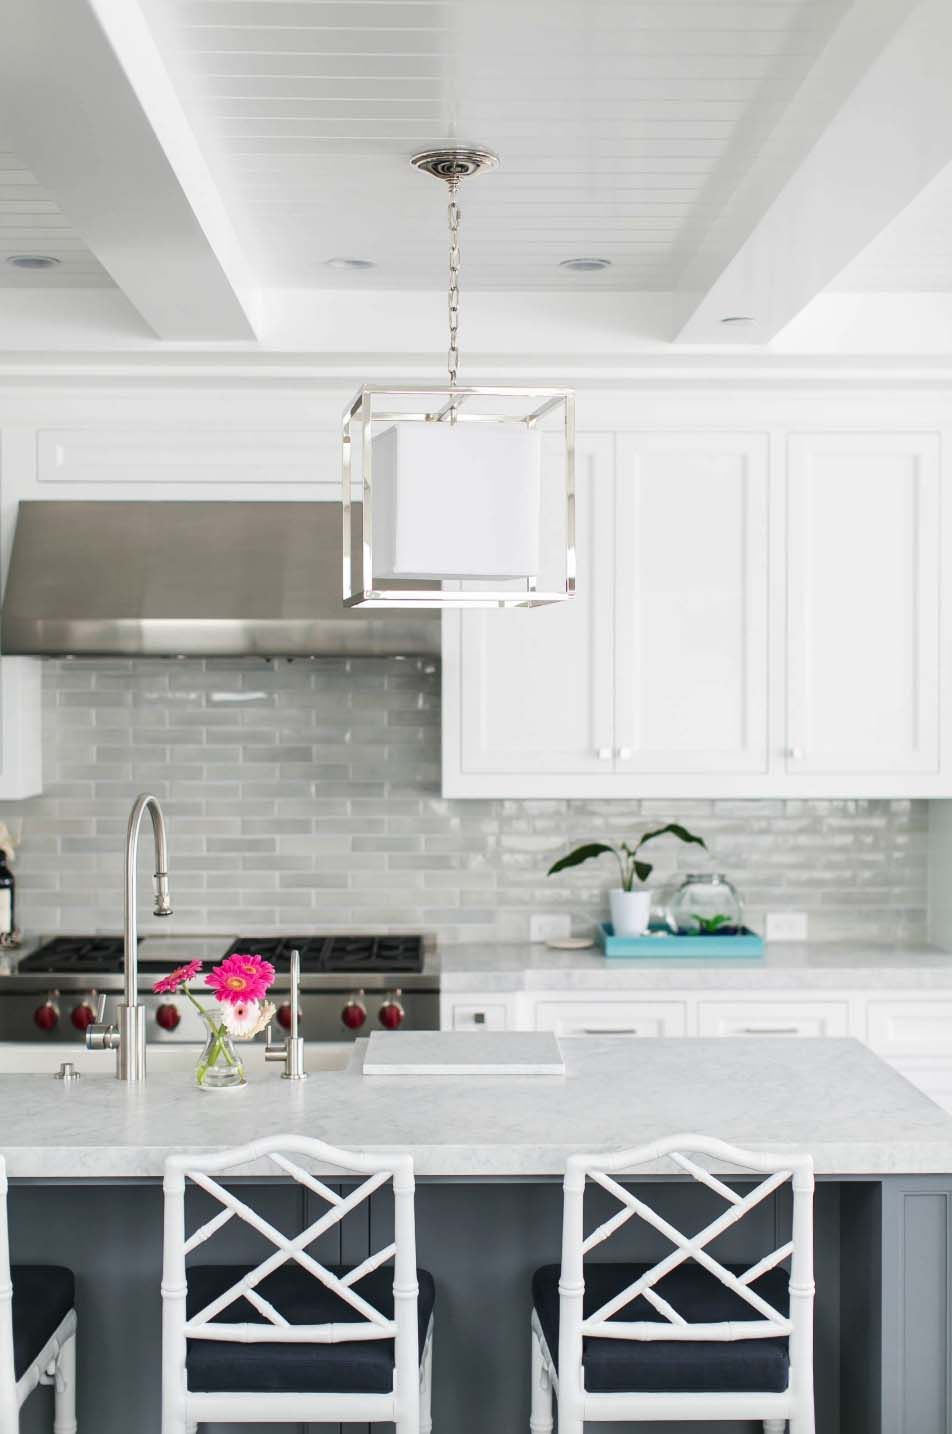 California Beach House Boasts Airy Contemporary Farmhouse Style Kitchen Backsplash Designs Backsplash For White Cabinets Gray Kitchen Backsplash